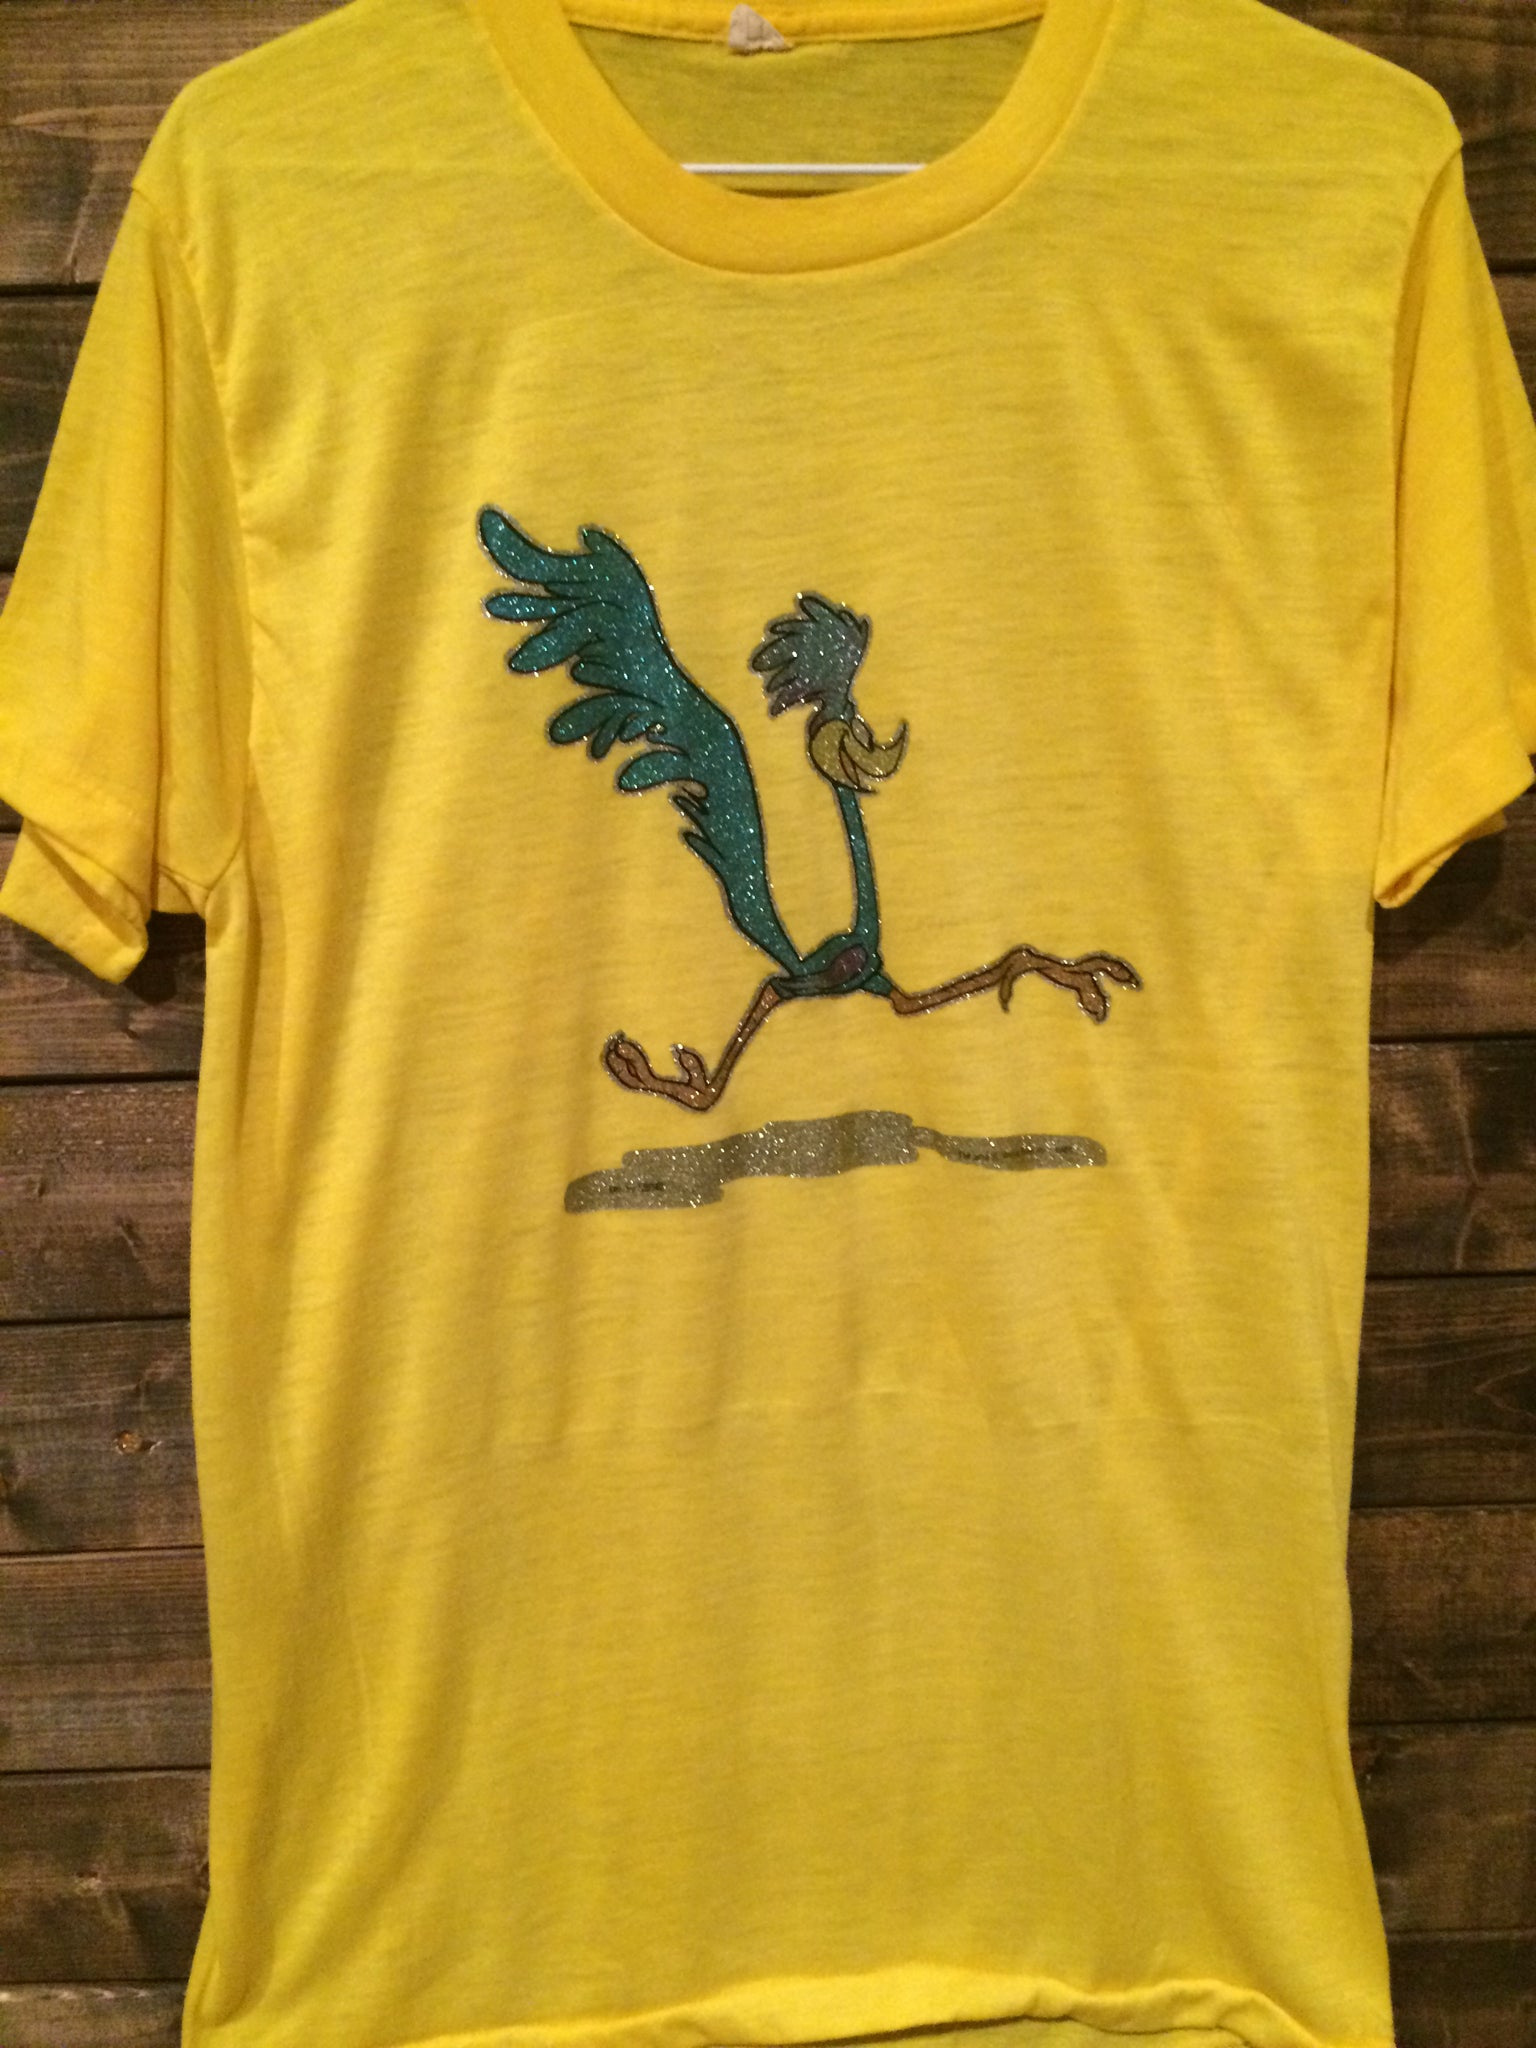 1970's Roadrunner Iron On Tee